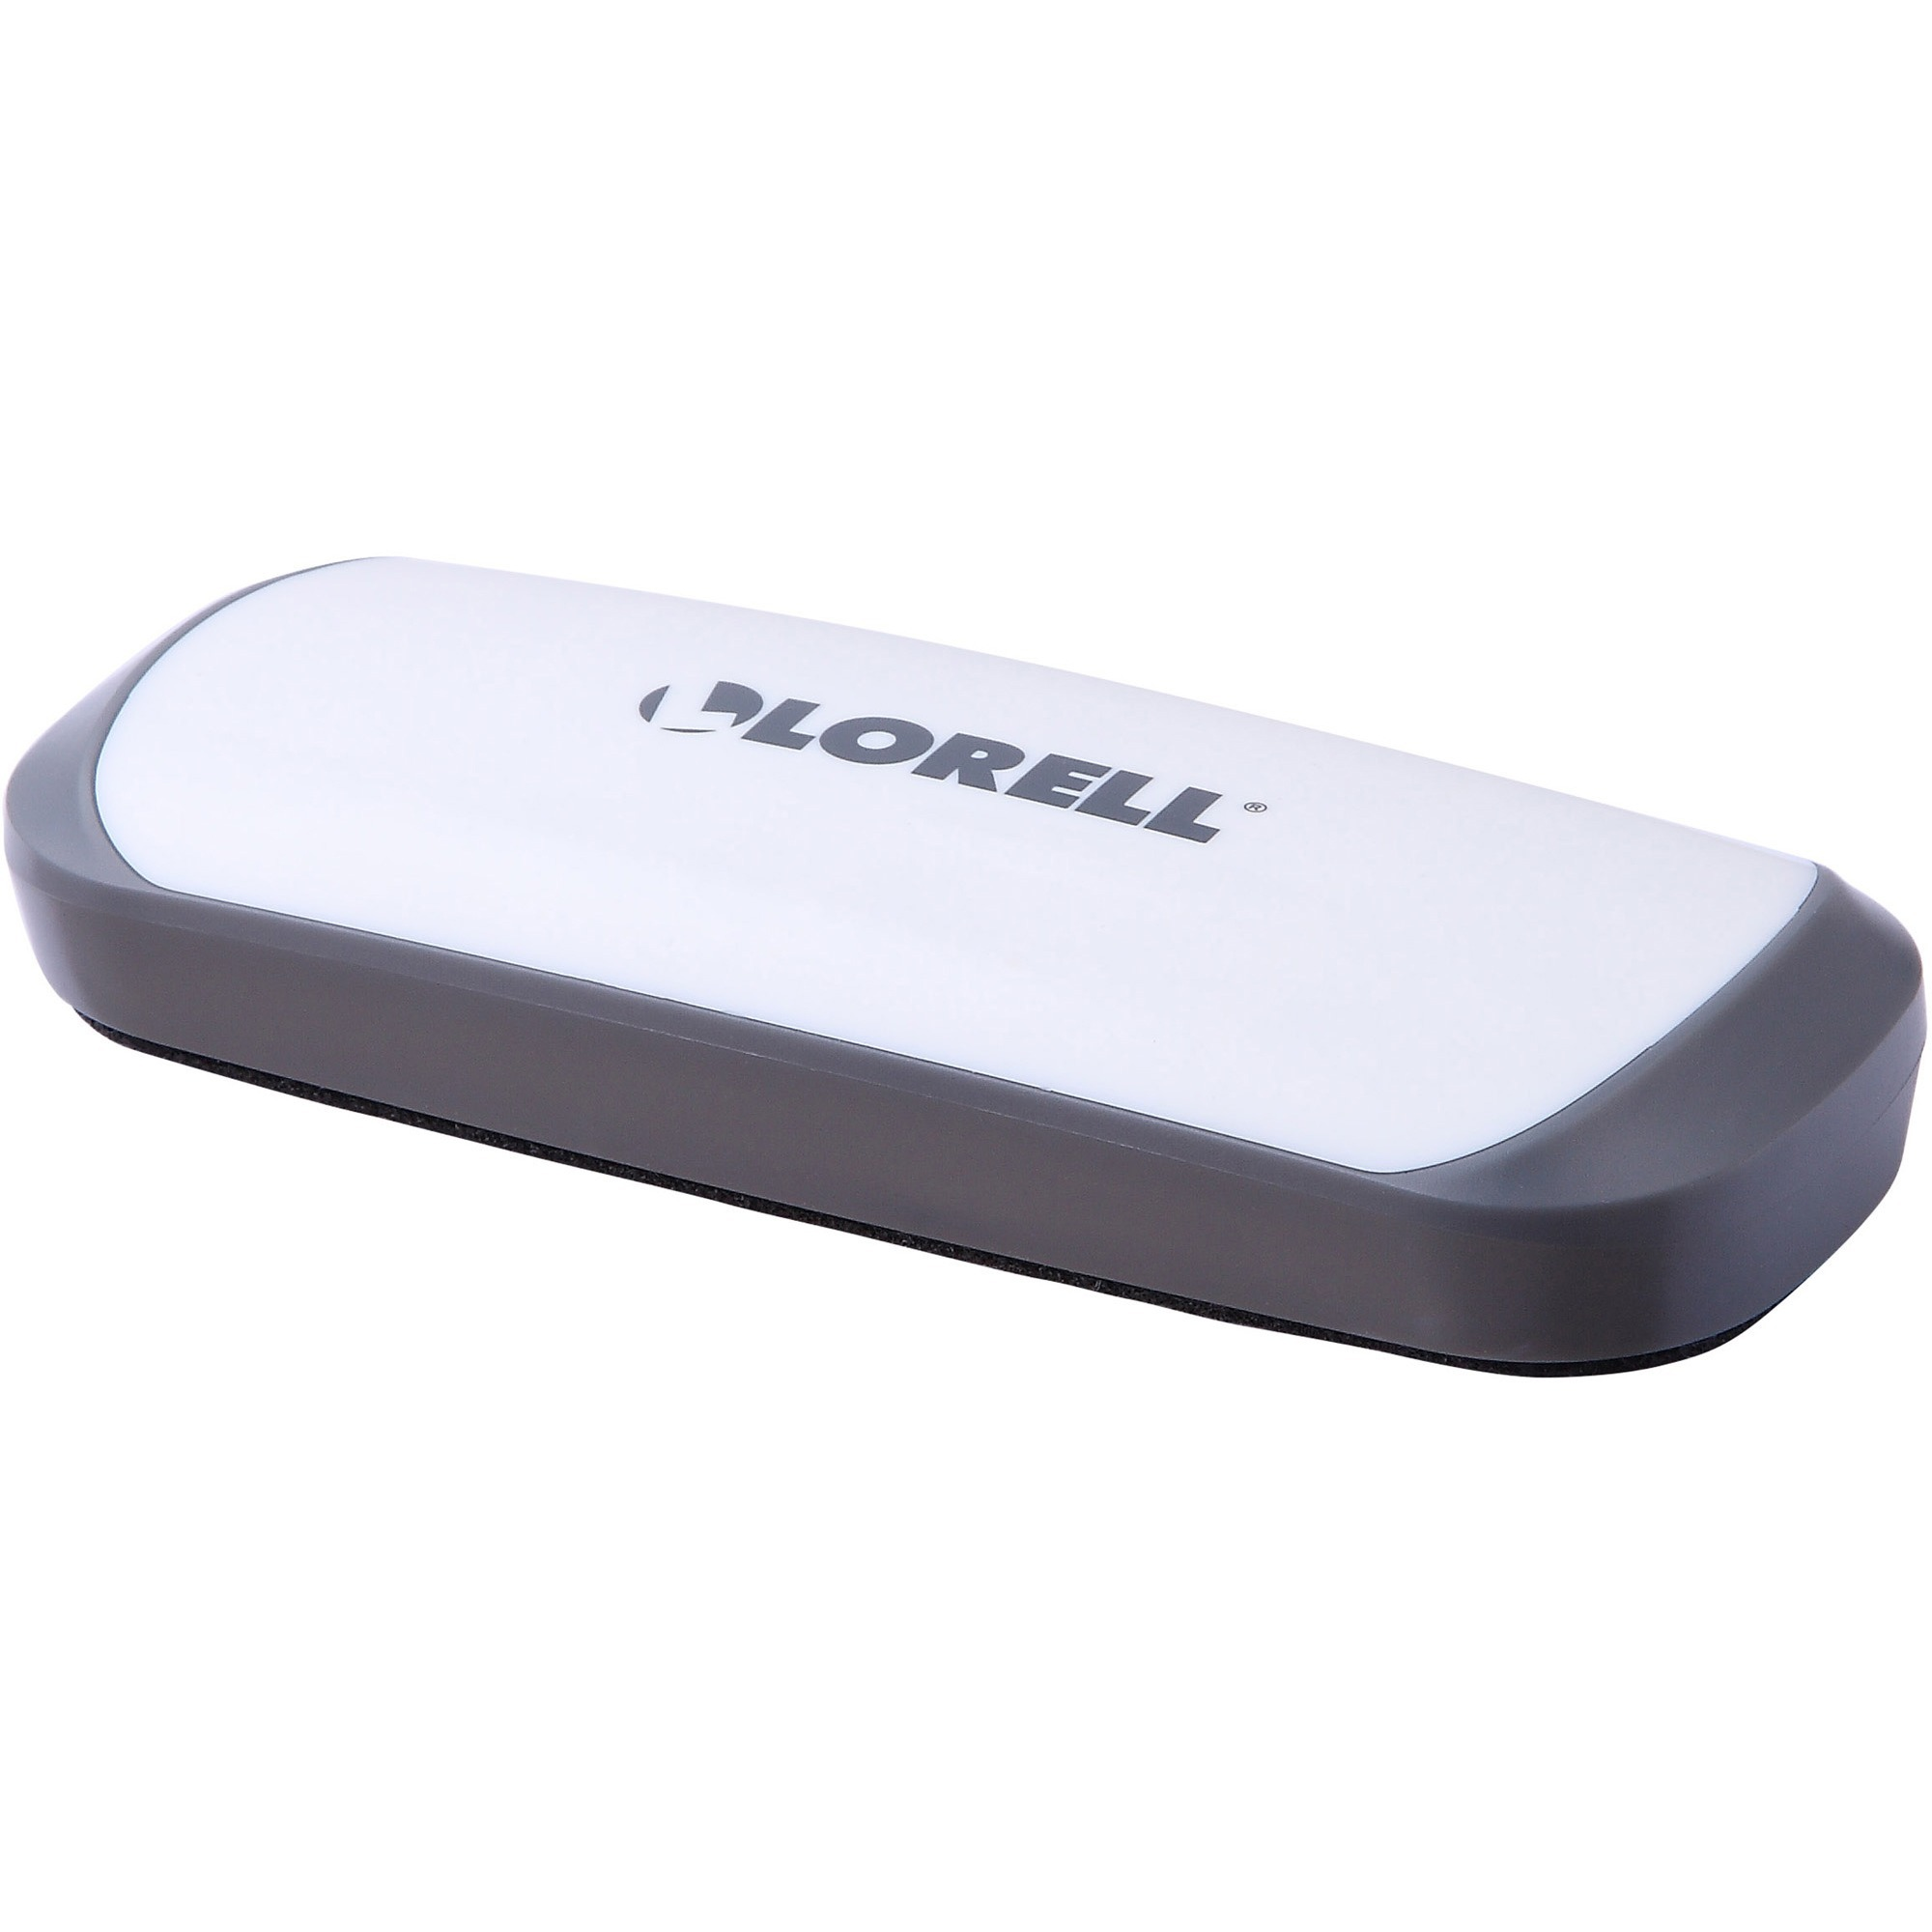 Lorell Rare Earth Magnet Board Eraser - Magnetic - Red, White - Plastic - 1EACH